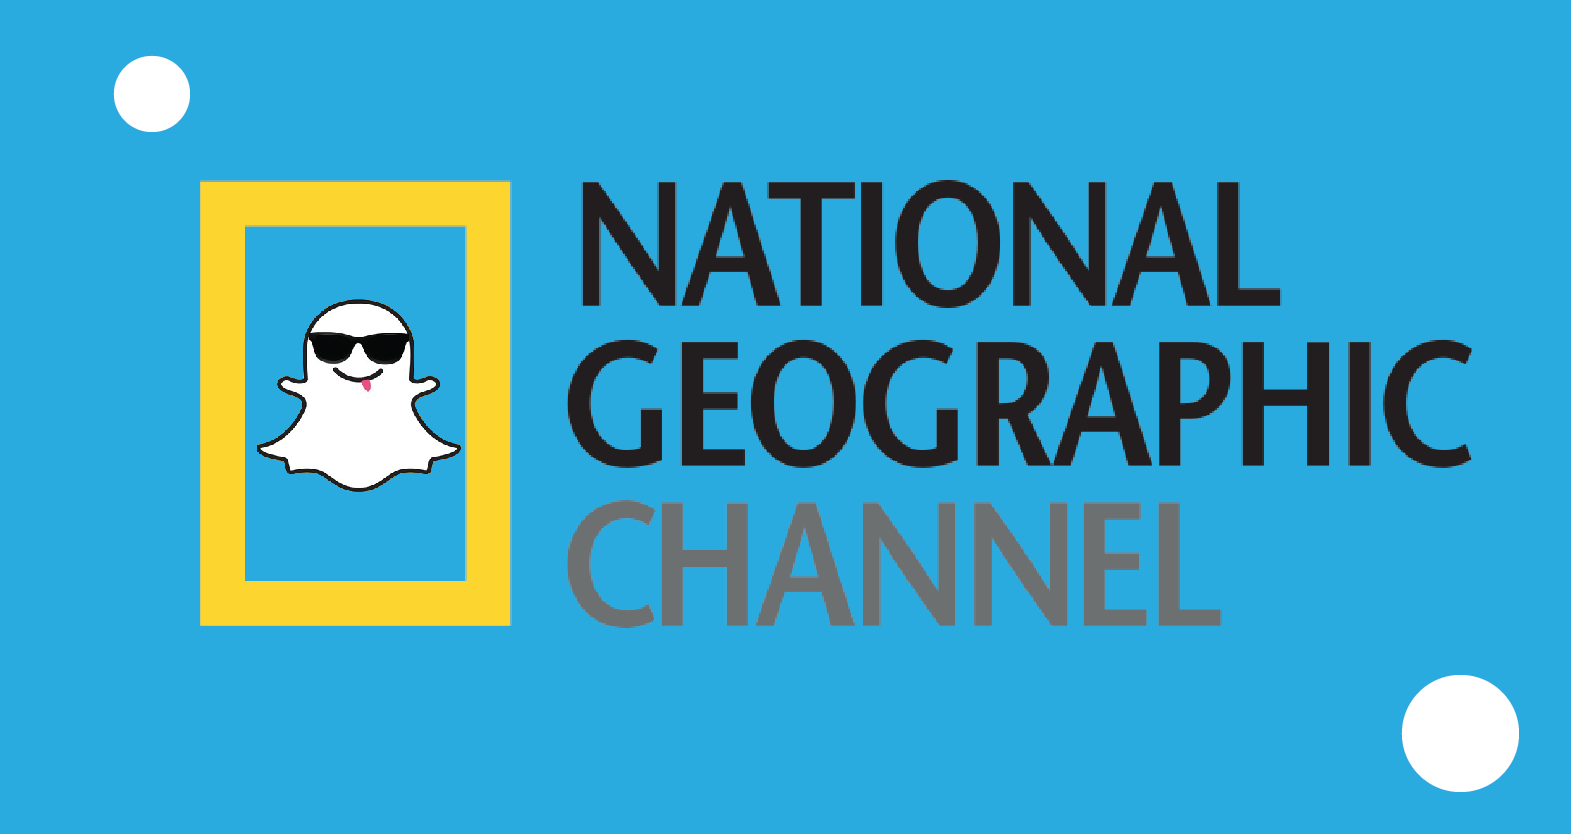 Natgeo has a snapchat to engage with followers.